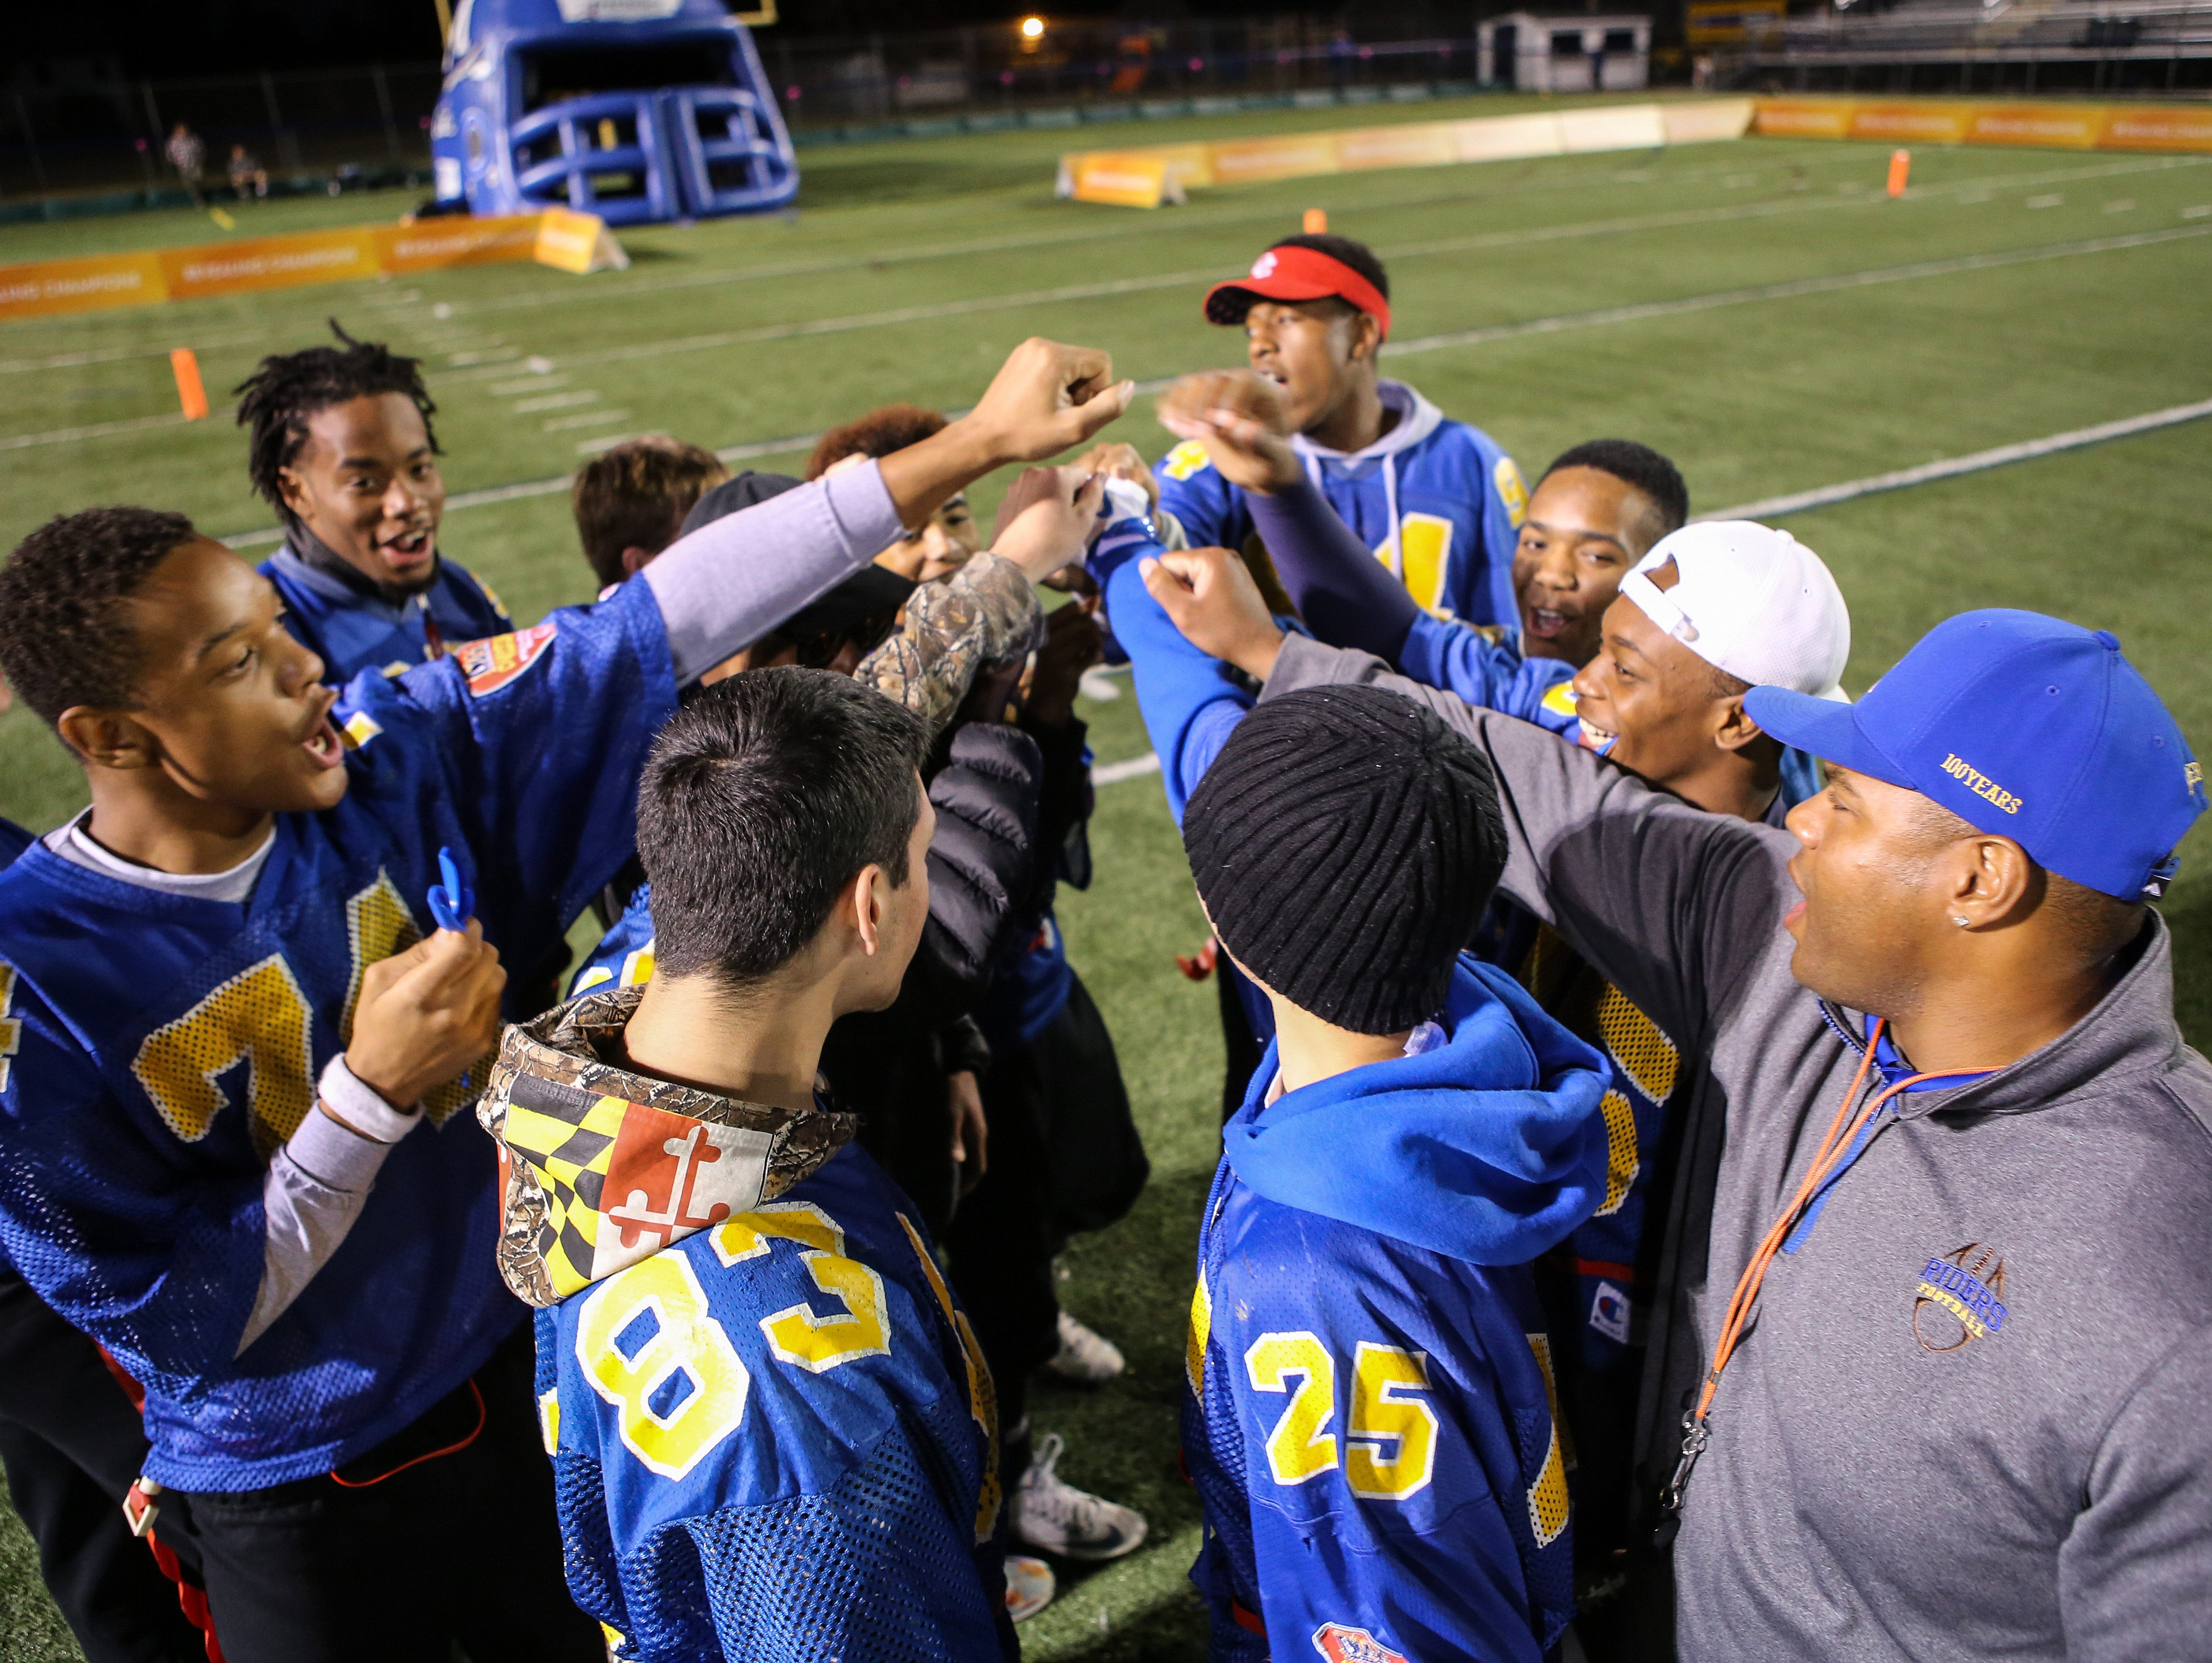 The Caesar Rodney Unified Football team huddles before the start of their game against Concord.